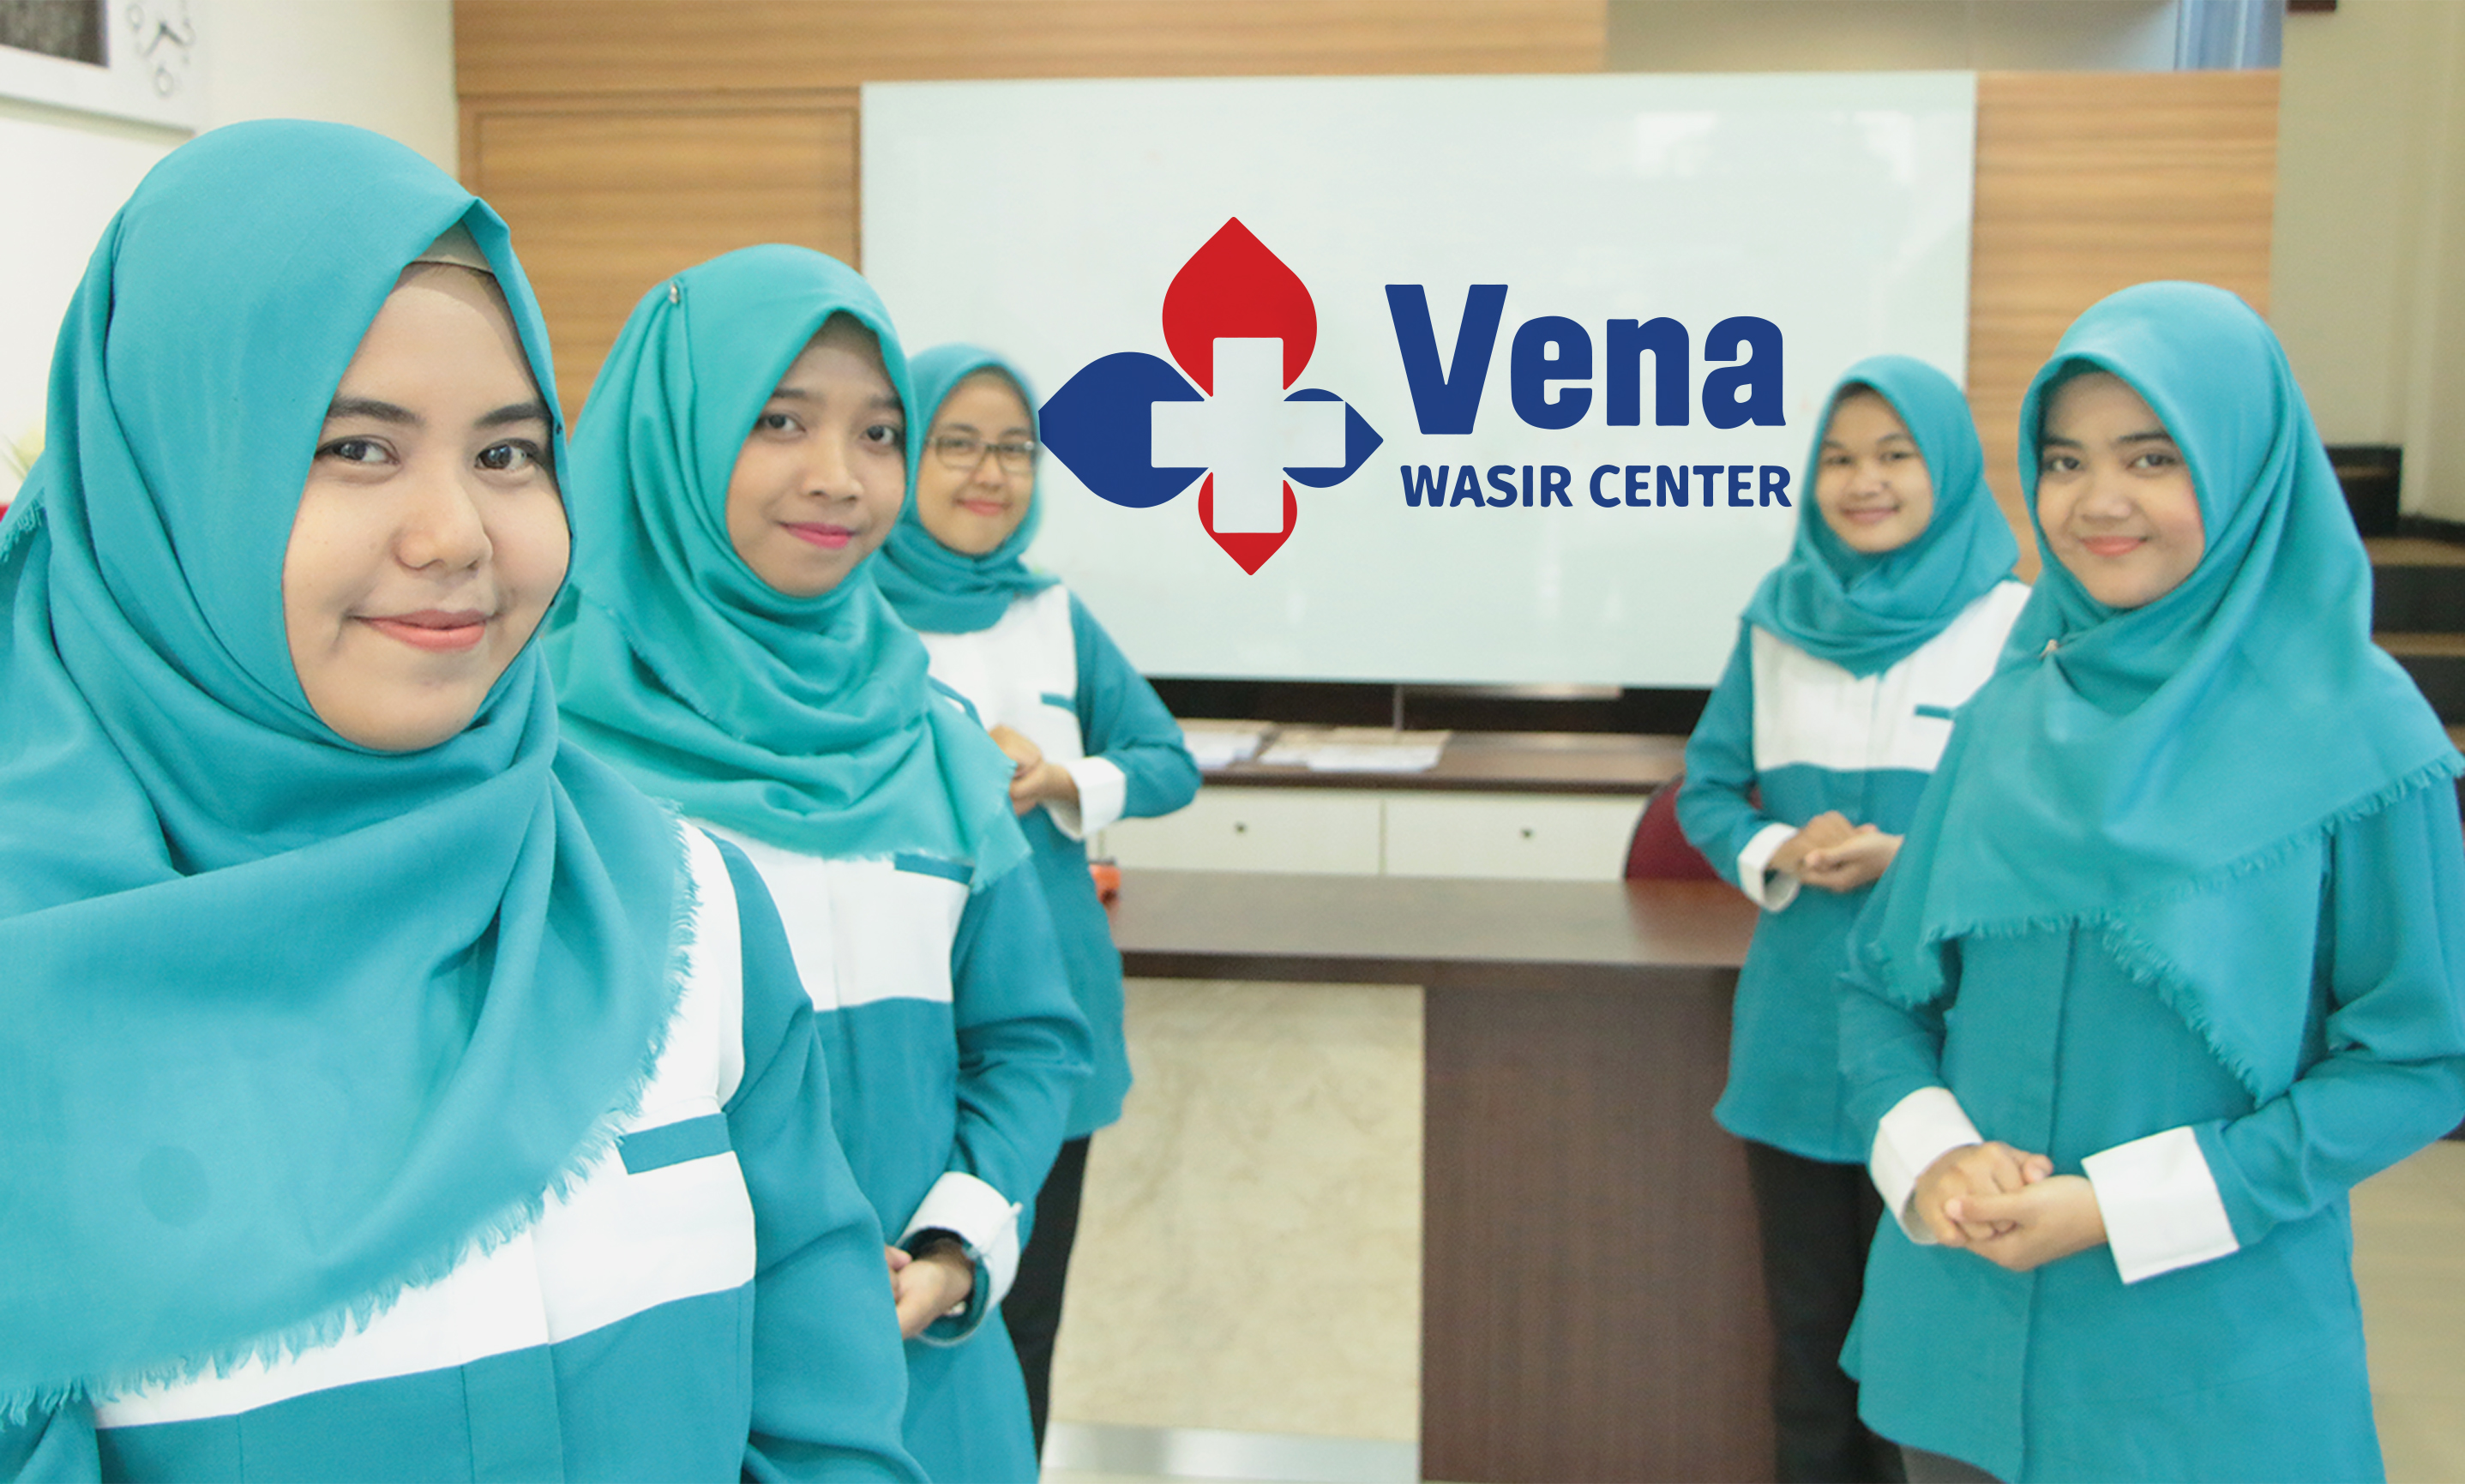 Tim vena wasir center